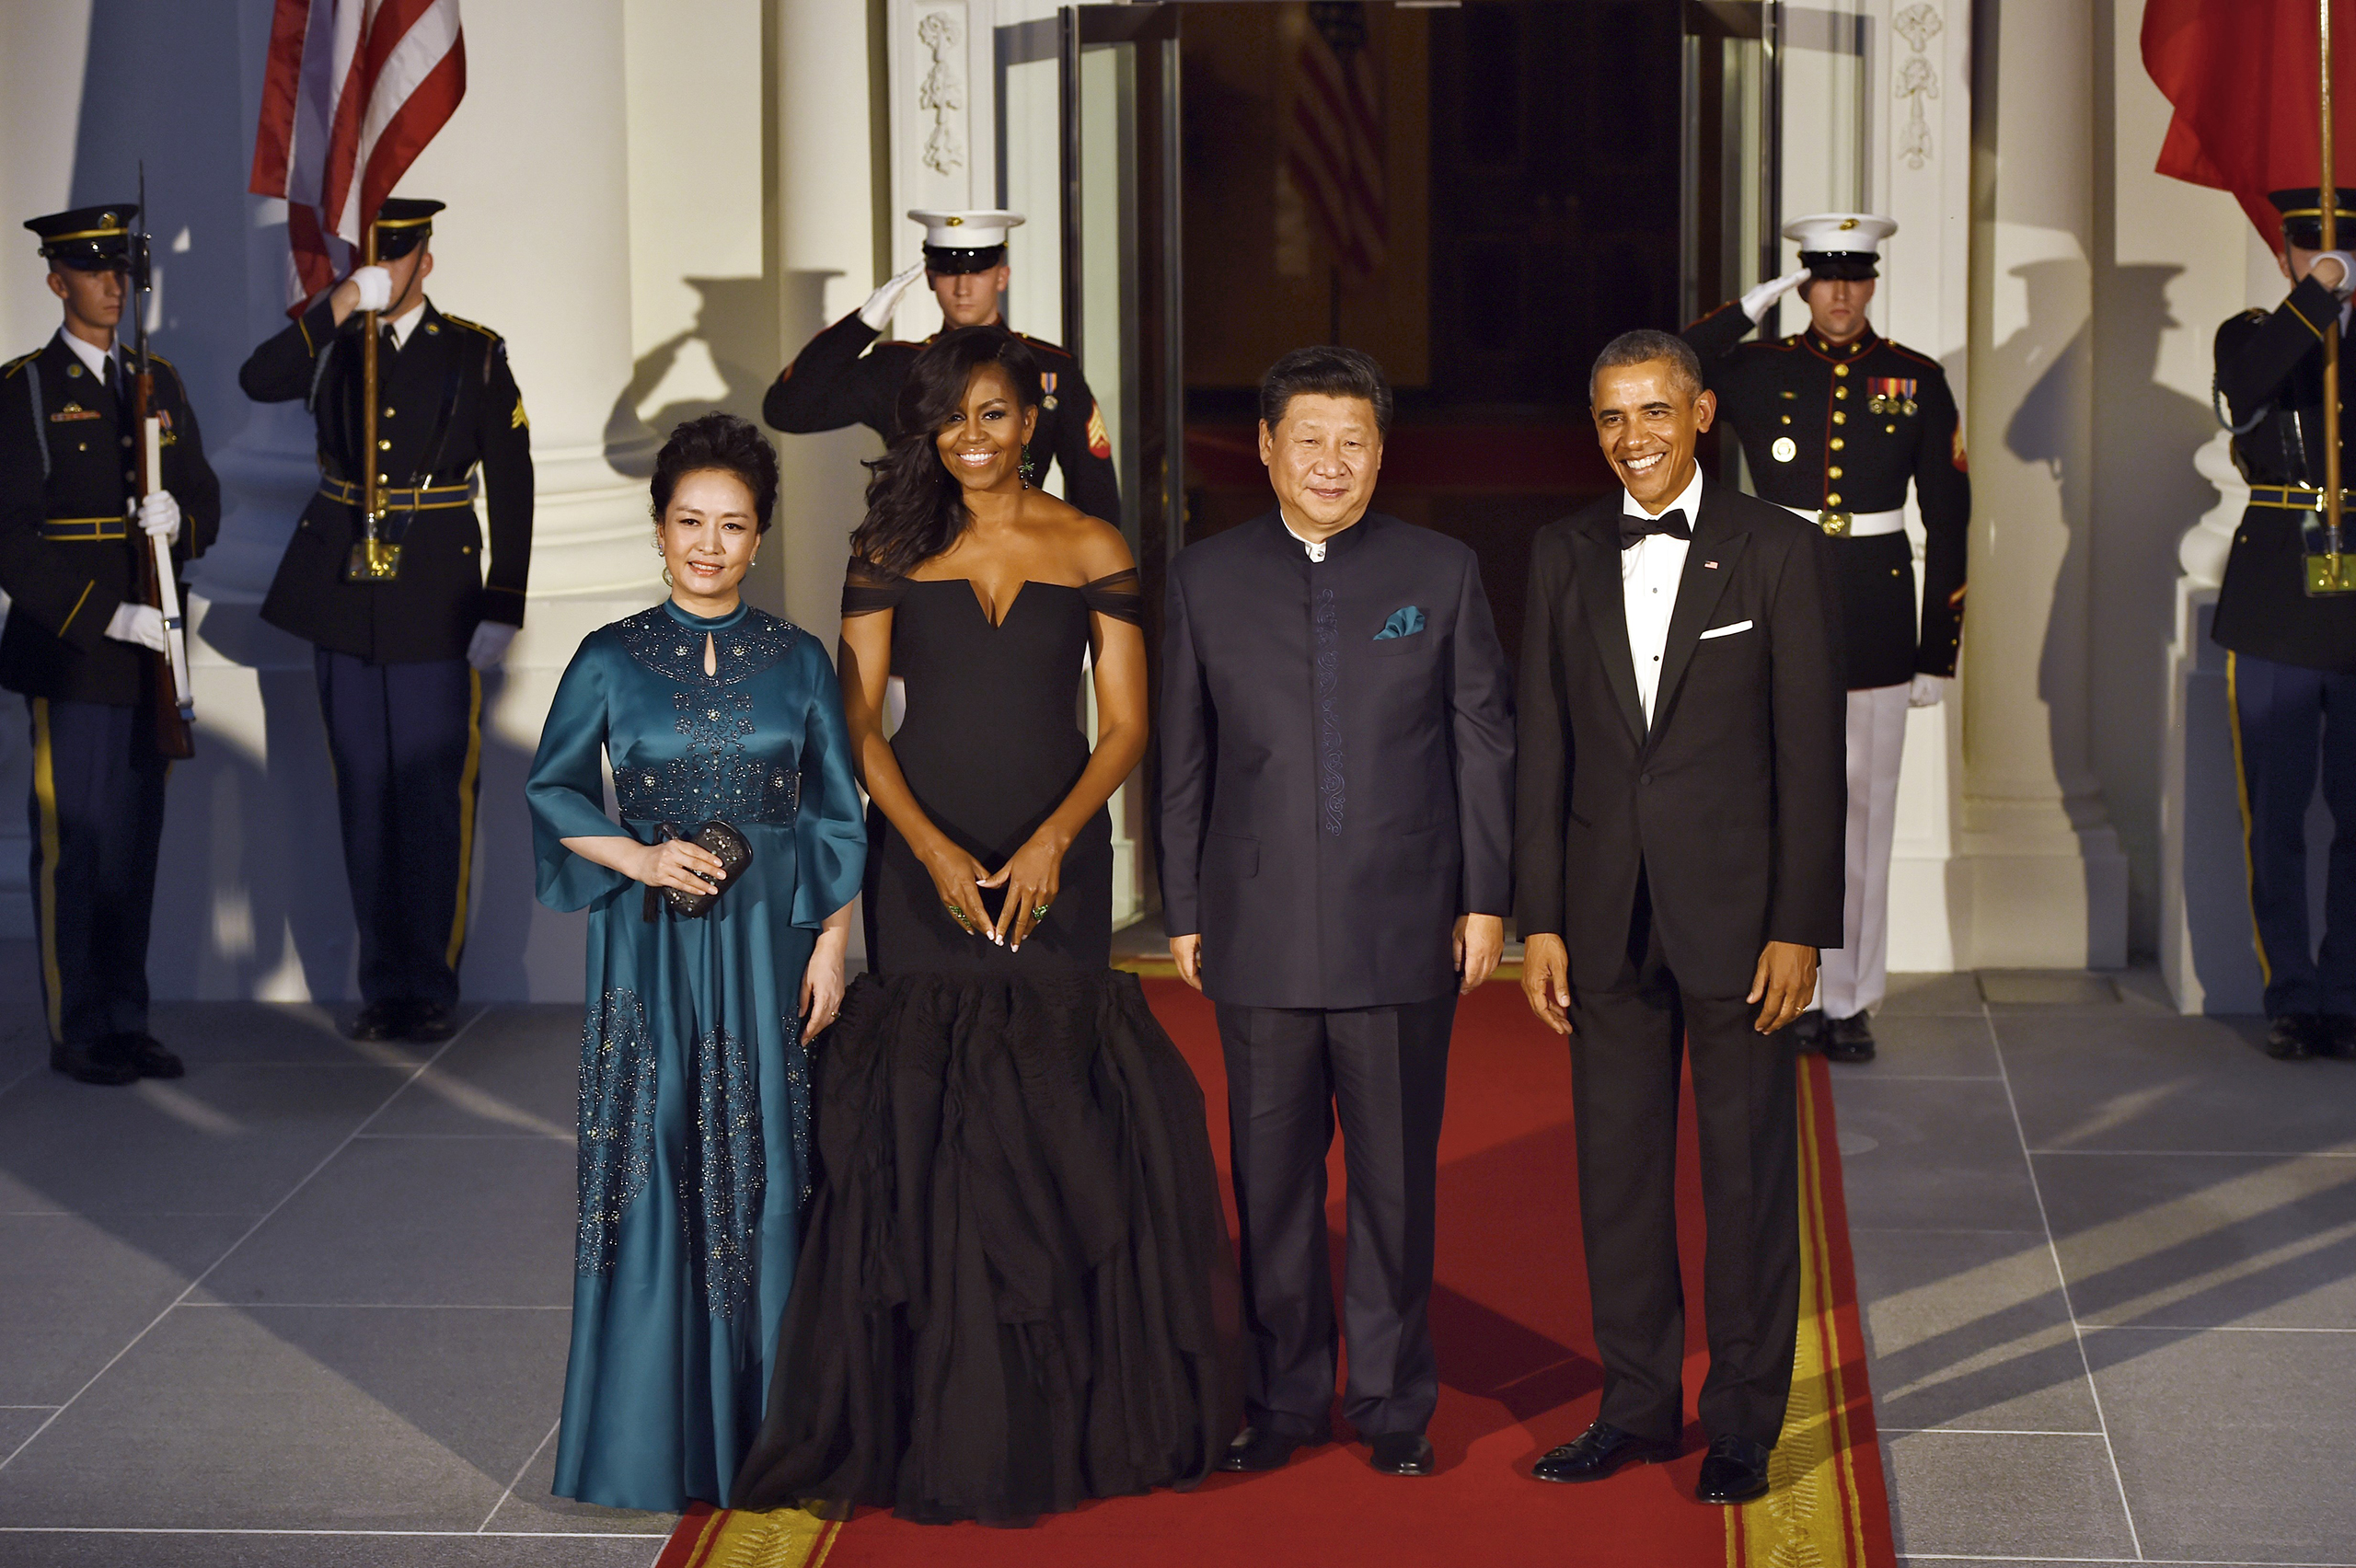 Barack Obama (R) and Michelle Obama (2nd-L) welcome Chinese President Xi Jinping (2nd-R) and his wife  Peng Liyuan (L) to the White House in Washington, D.C., on Sept. 25, 2015.